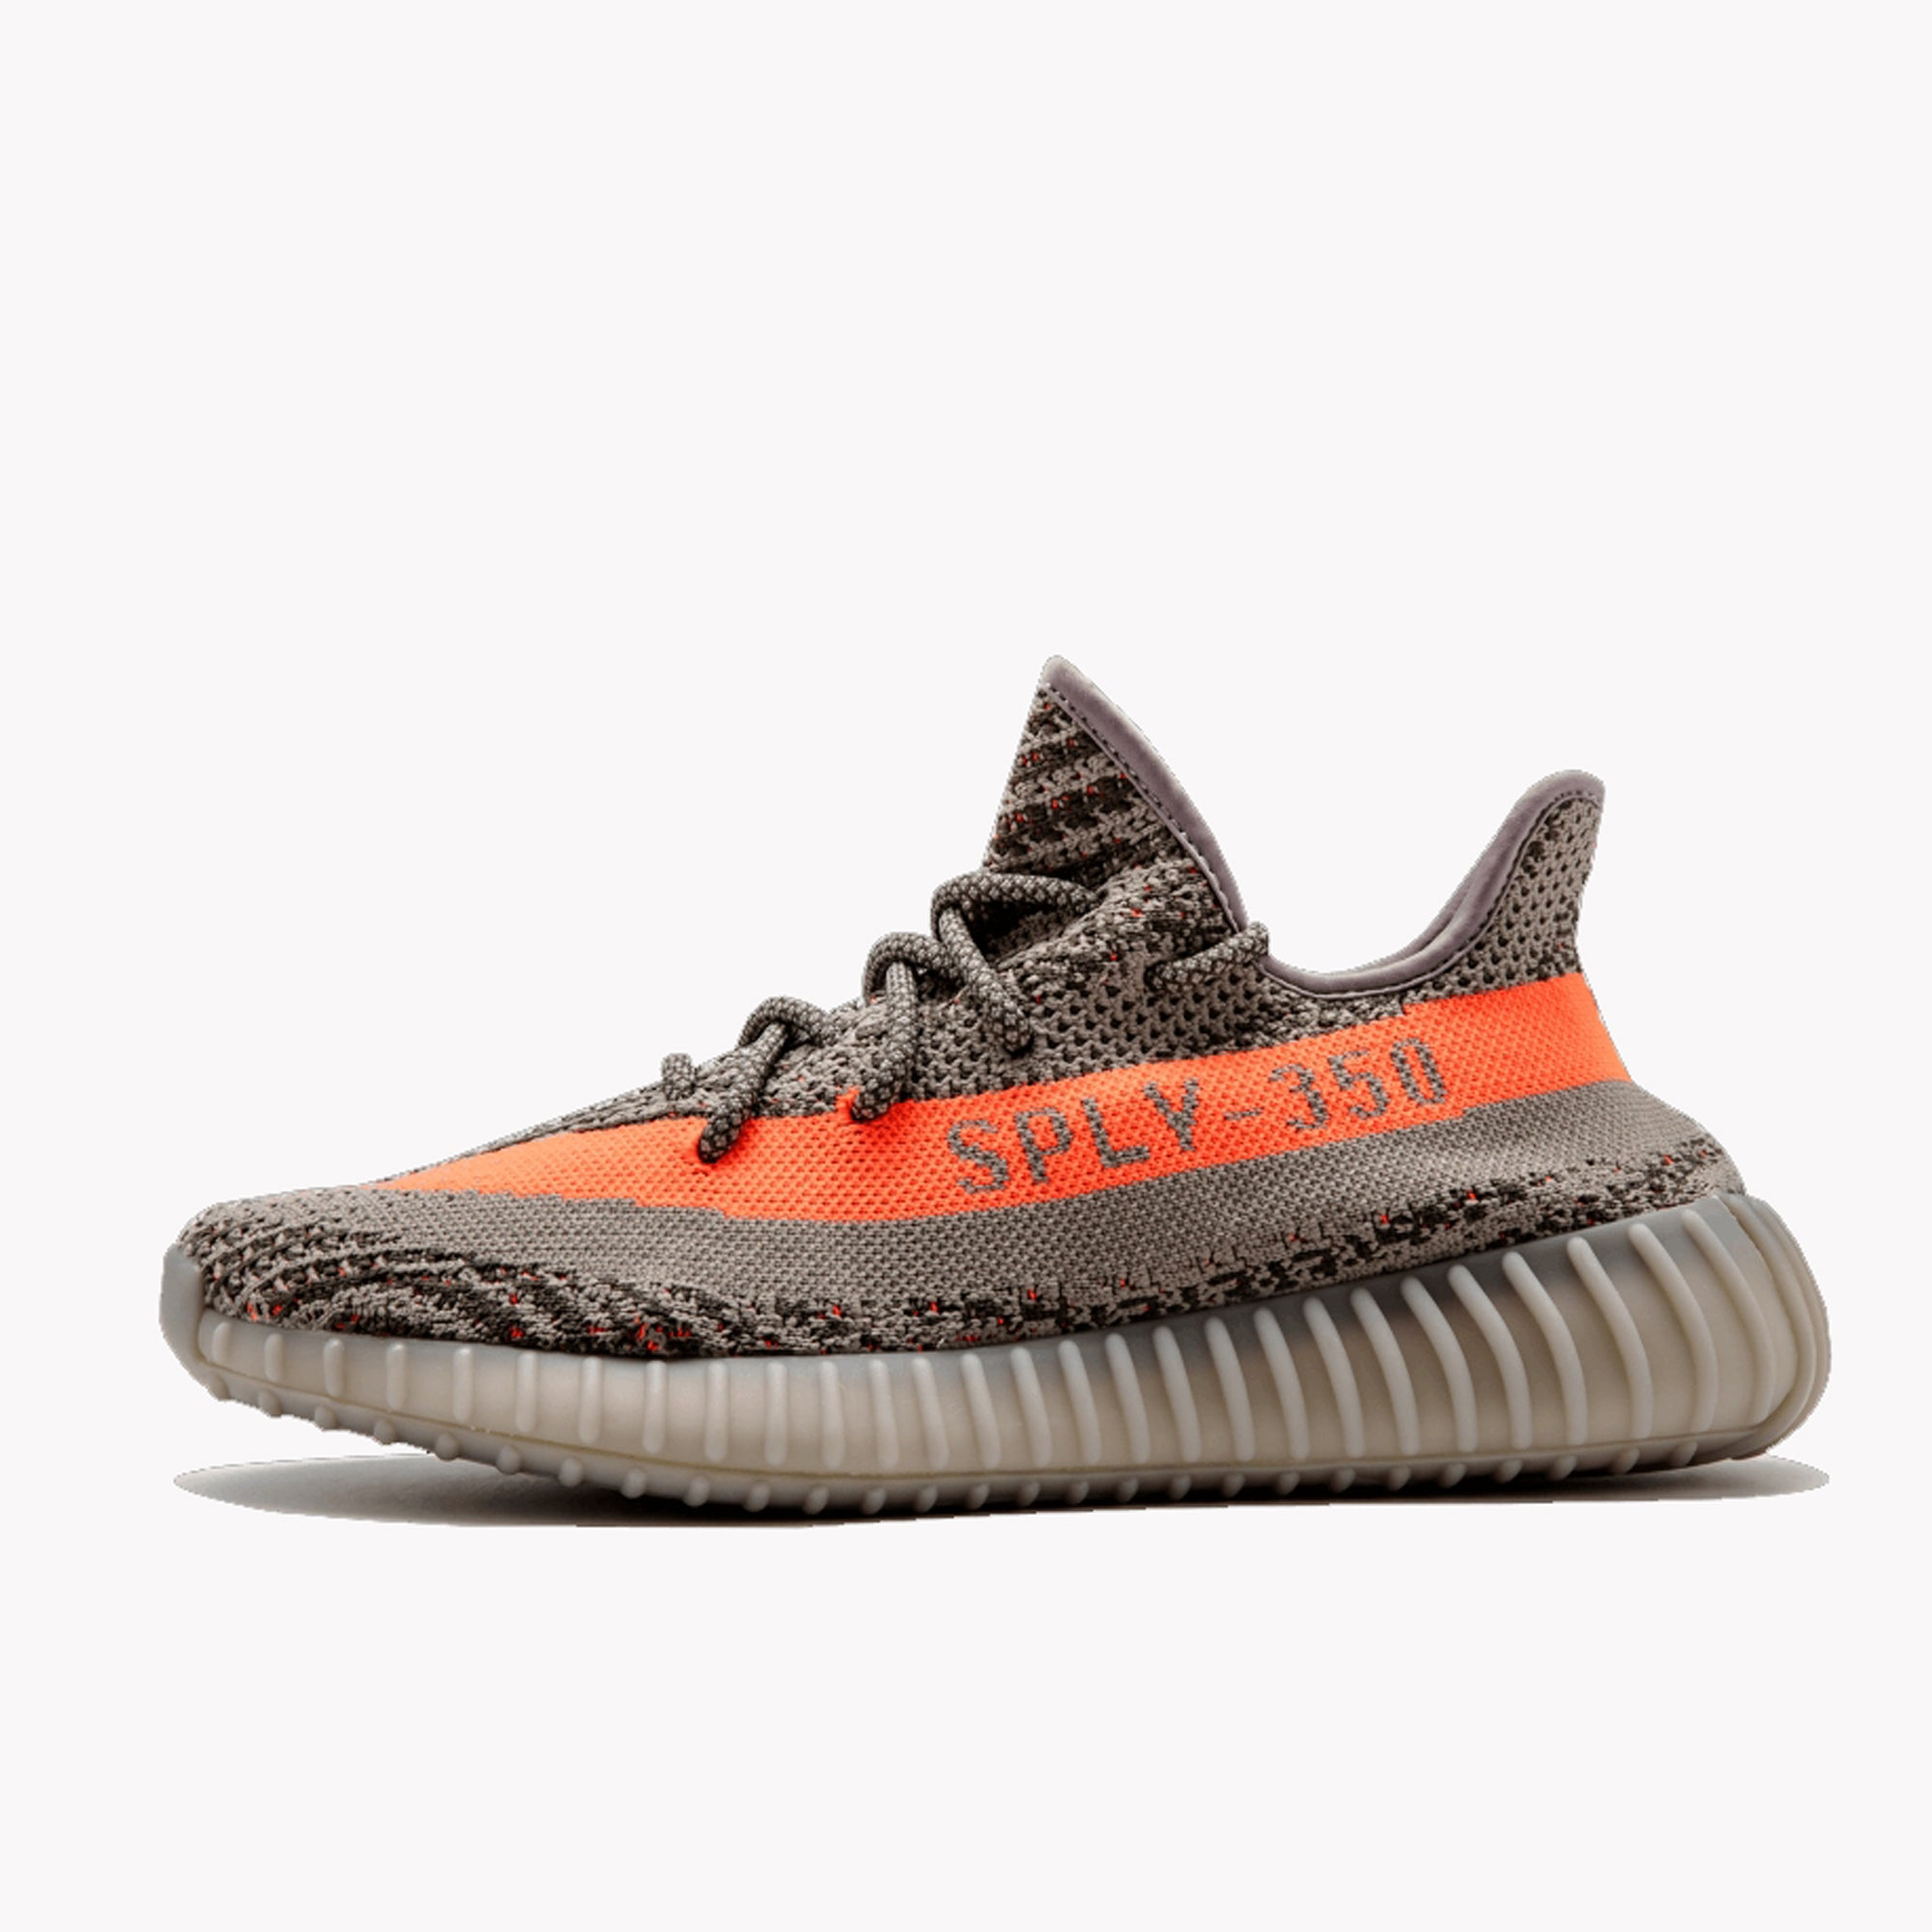 outlet store 7f8a6 73bb8 Adidas Yeezy Boost 350 V2